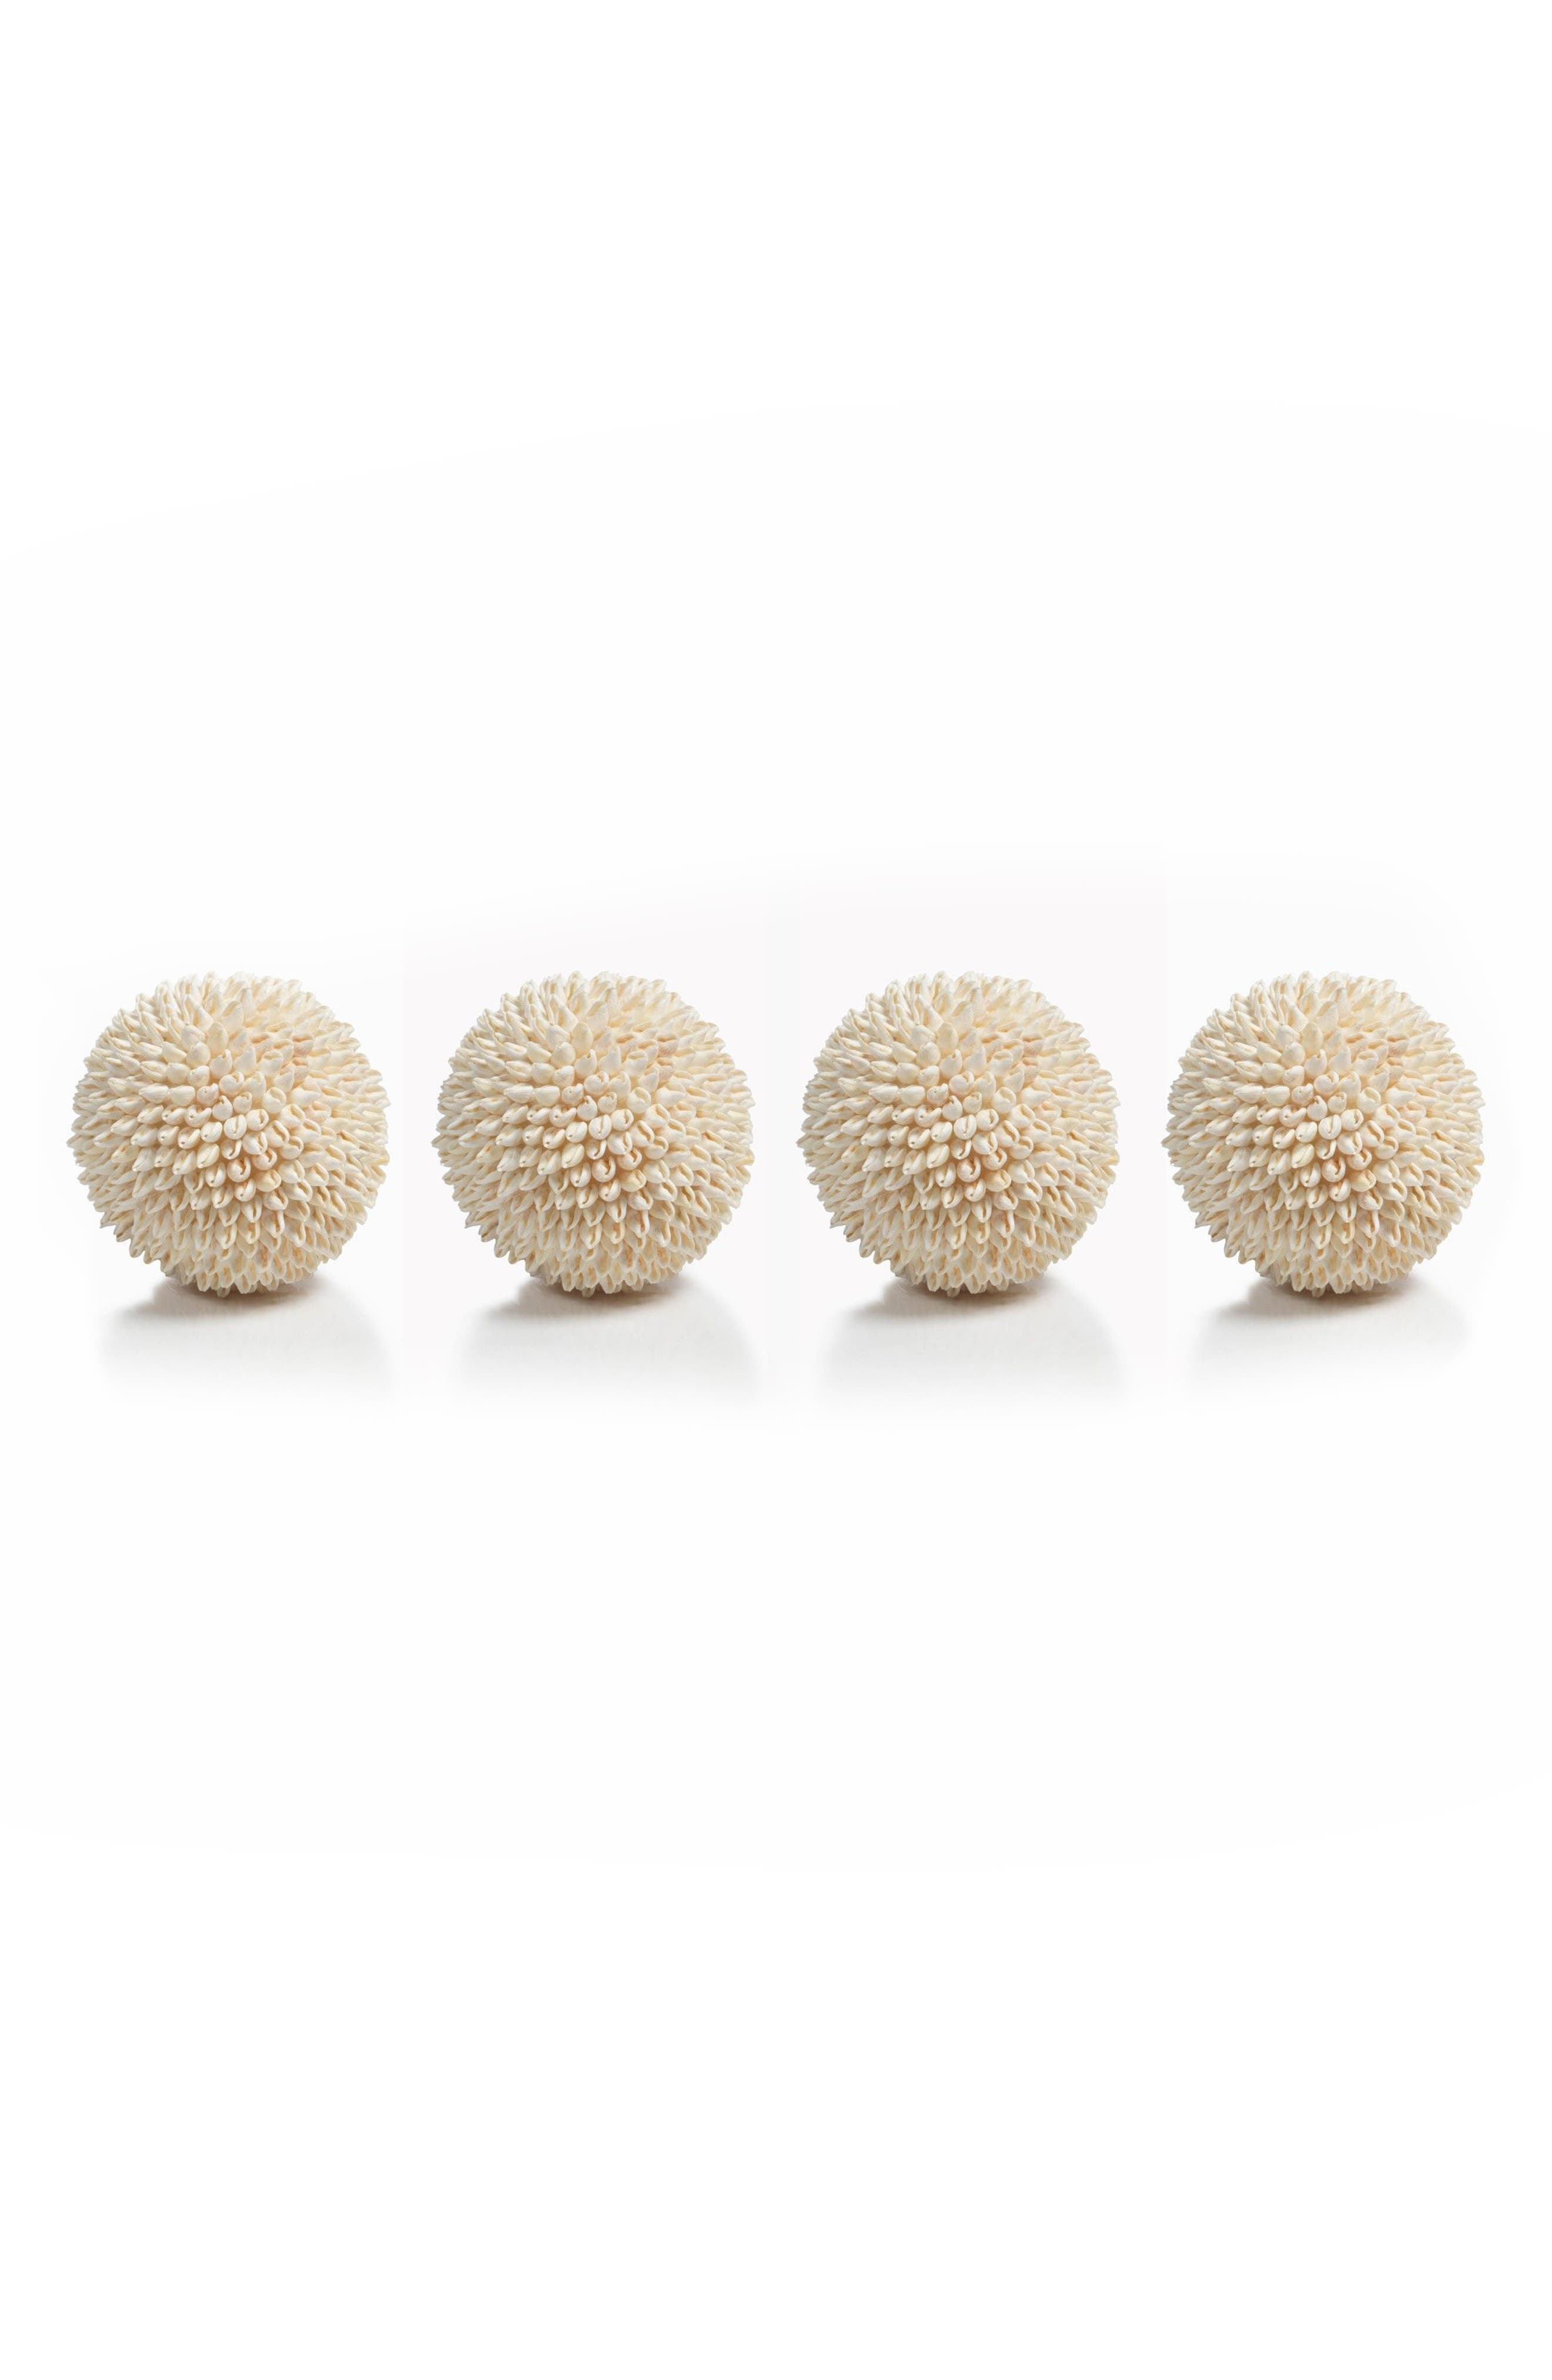 Palay Set of 4 Shell Decorations,                         Main,                         color, Beige